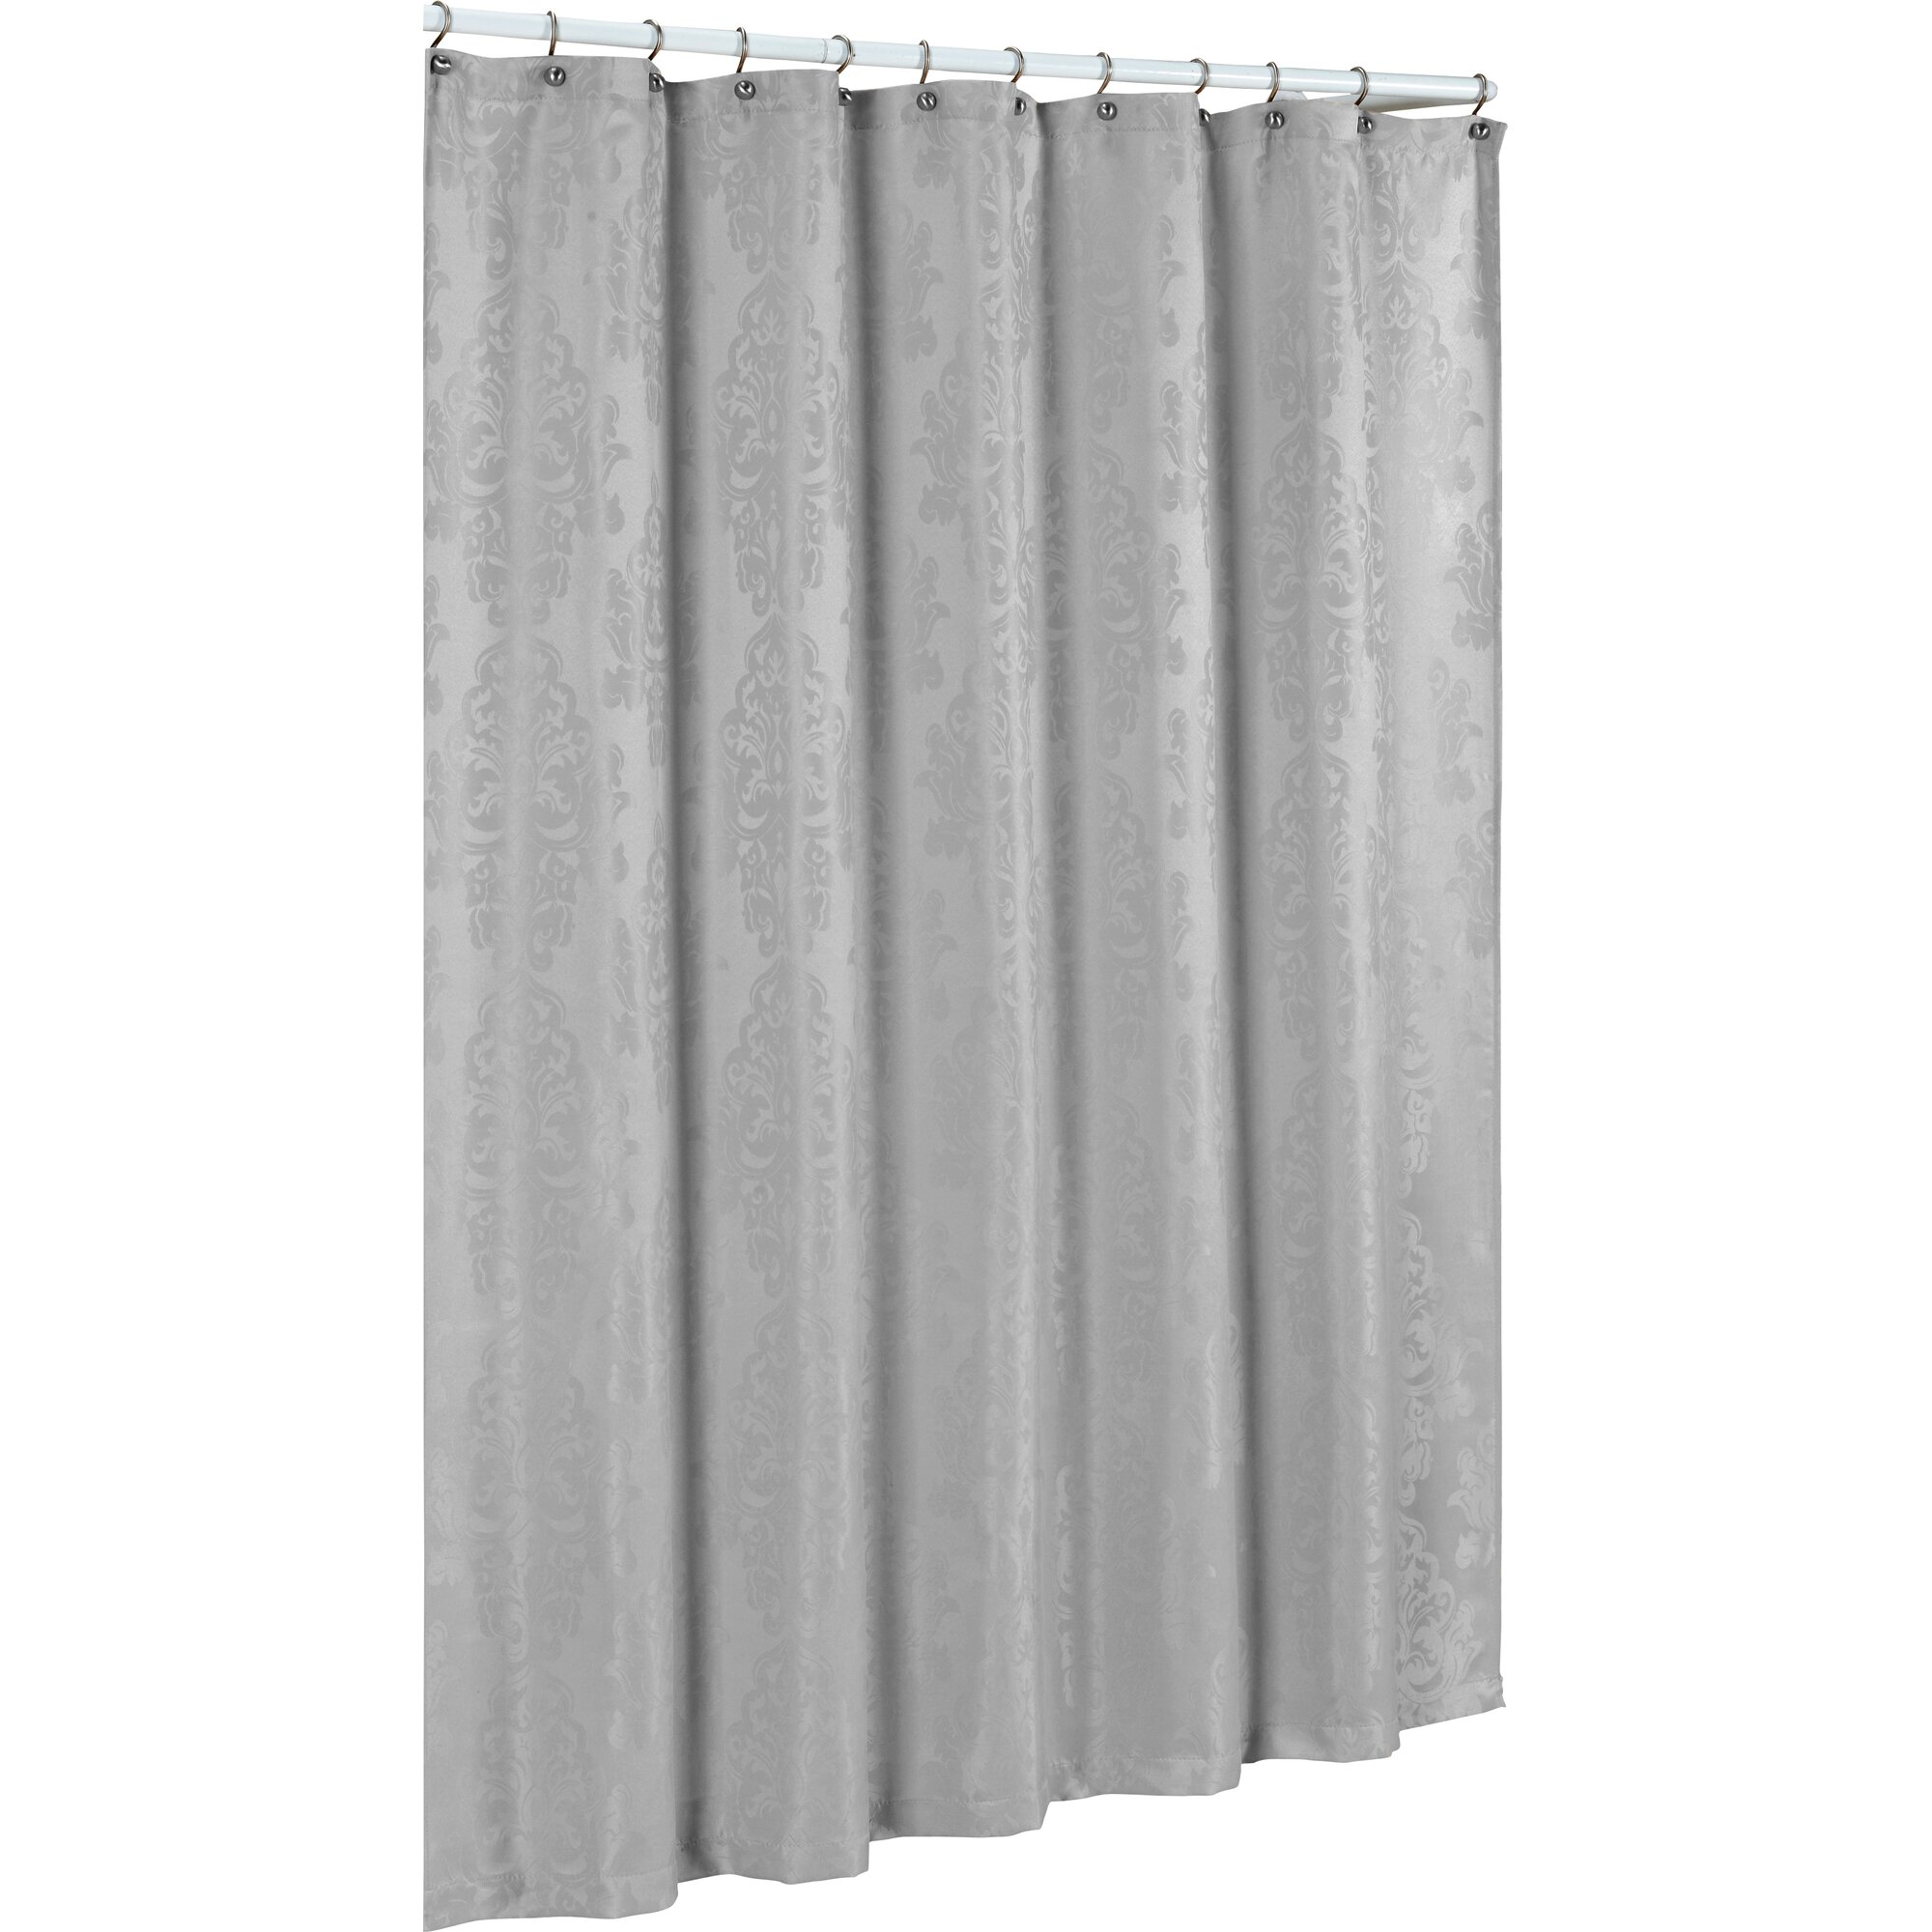 Gray Linen Shower Curtains Best Curtains 2017 Linen Shower